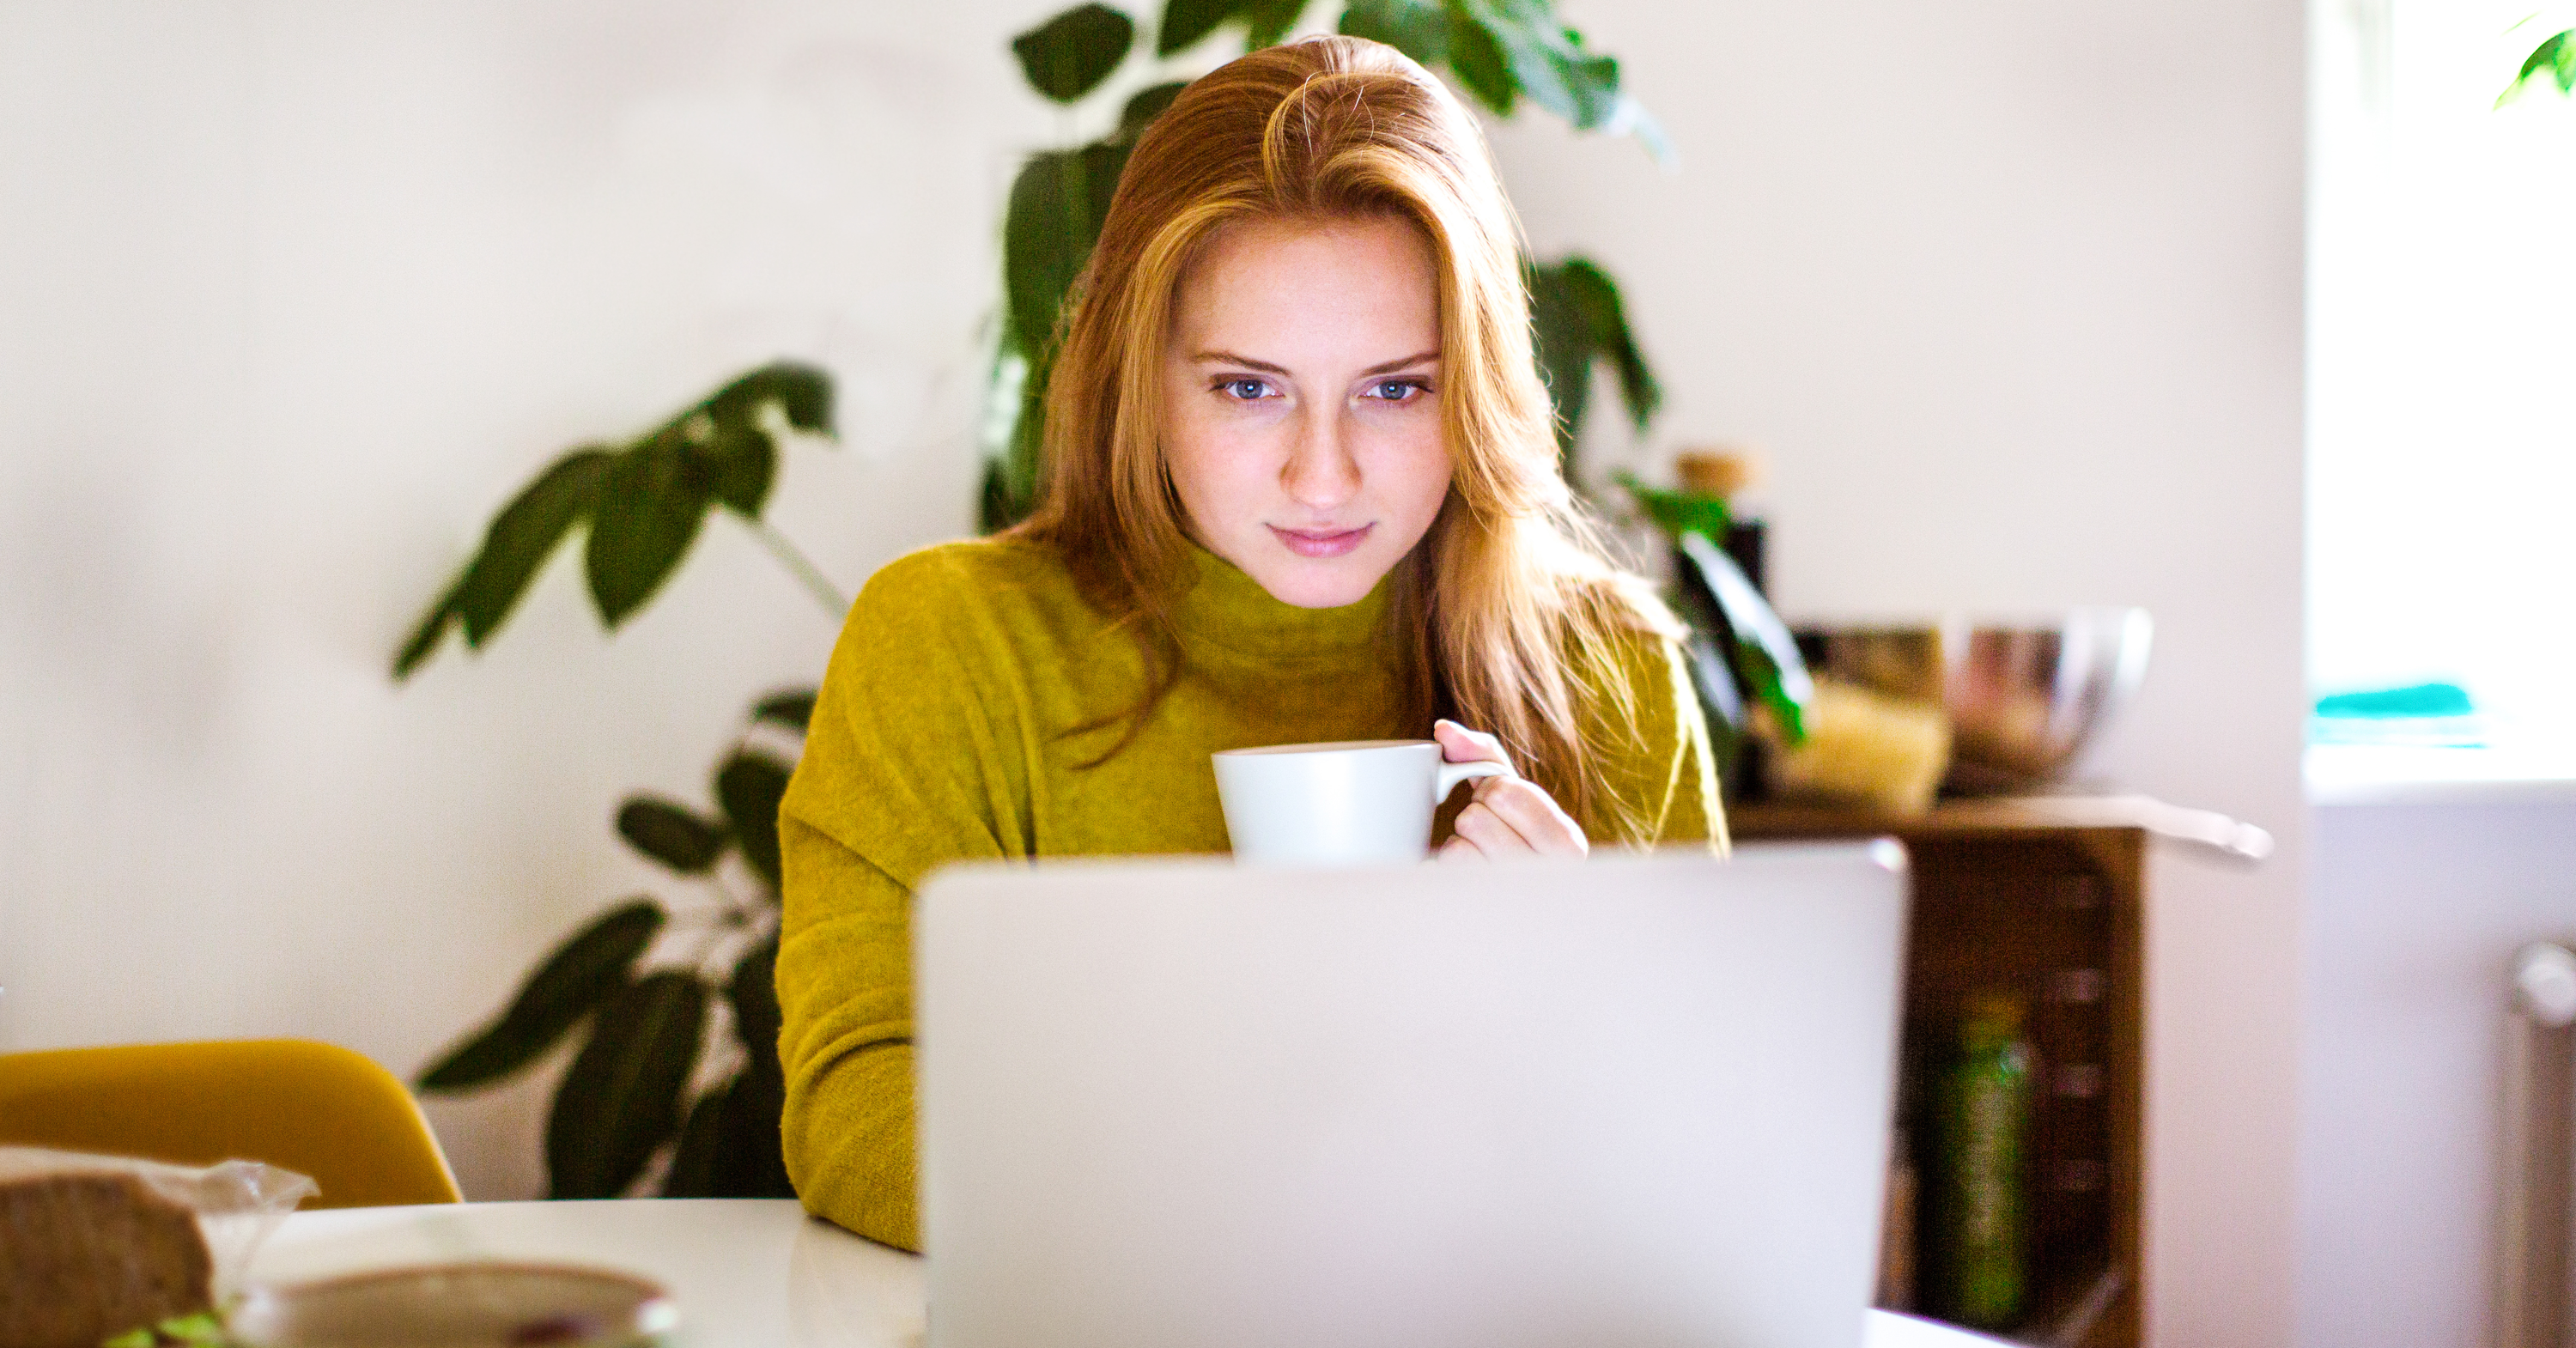 Woman holding a coffee mug looking at a laptop computer